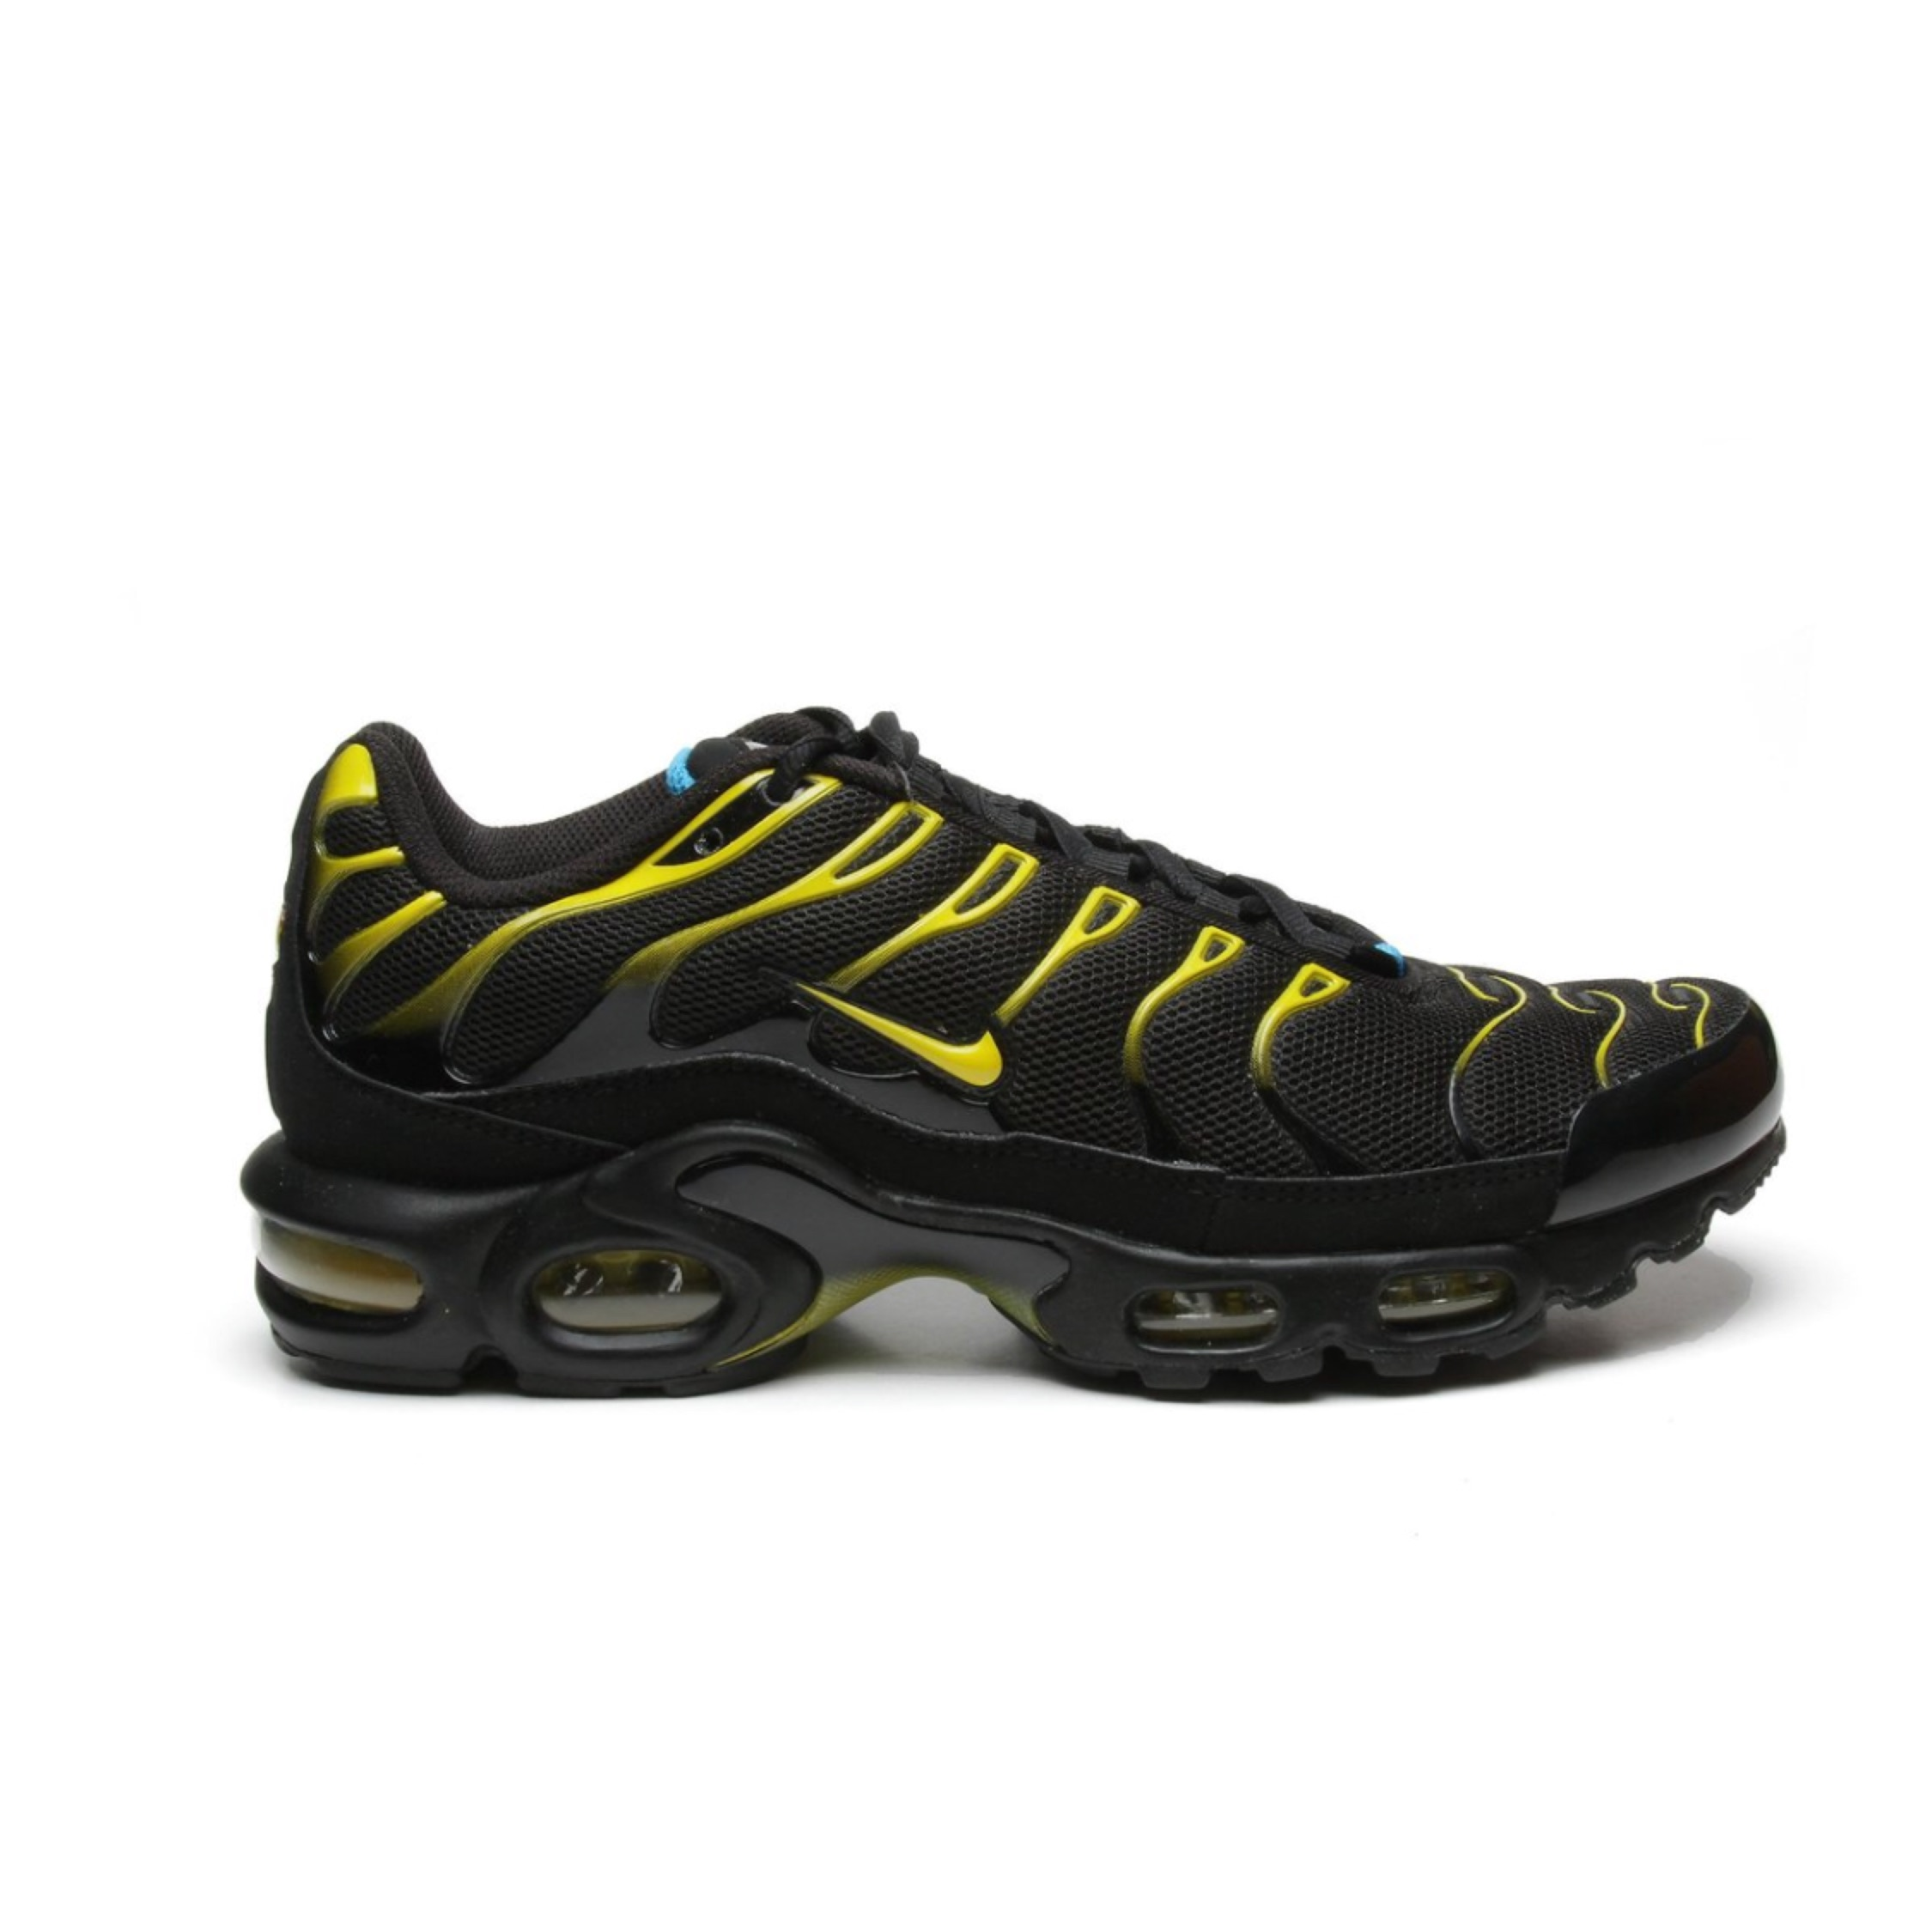 free shipping 180f7 dd845 Nike Air Max Plus Tn Black/Yellow Eu42